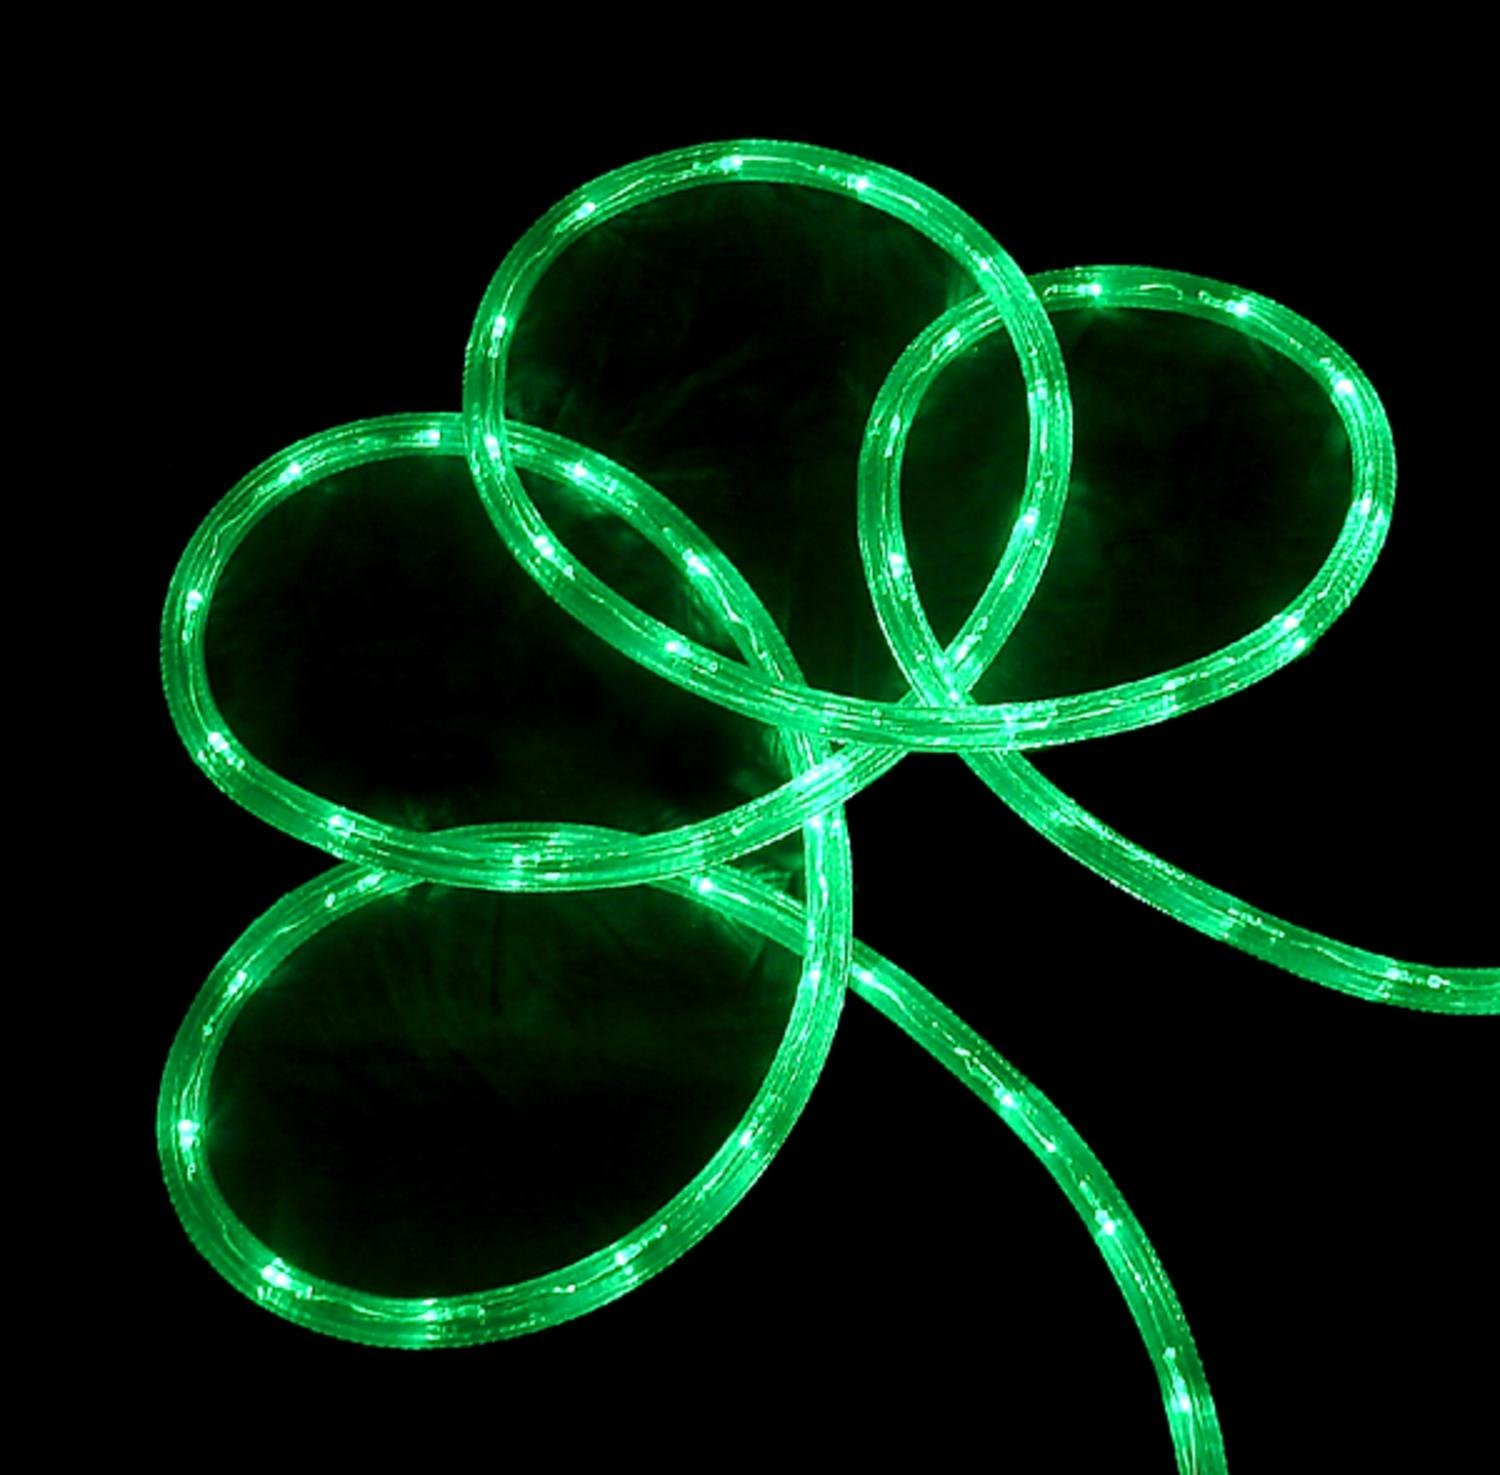 Cheap rope lights green find rope lights green deals on line at get quotations 150 commericial grade green led indooroutdoor christmas rope lights on a spool aloadofball Choice Image